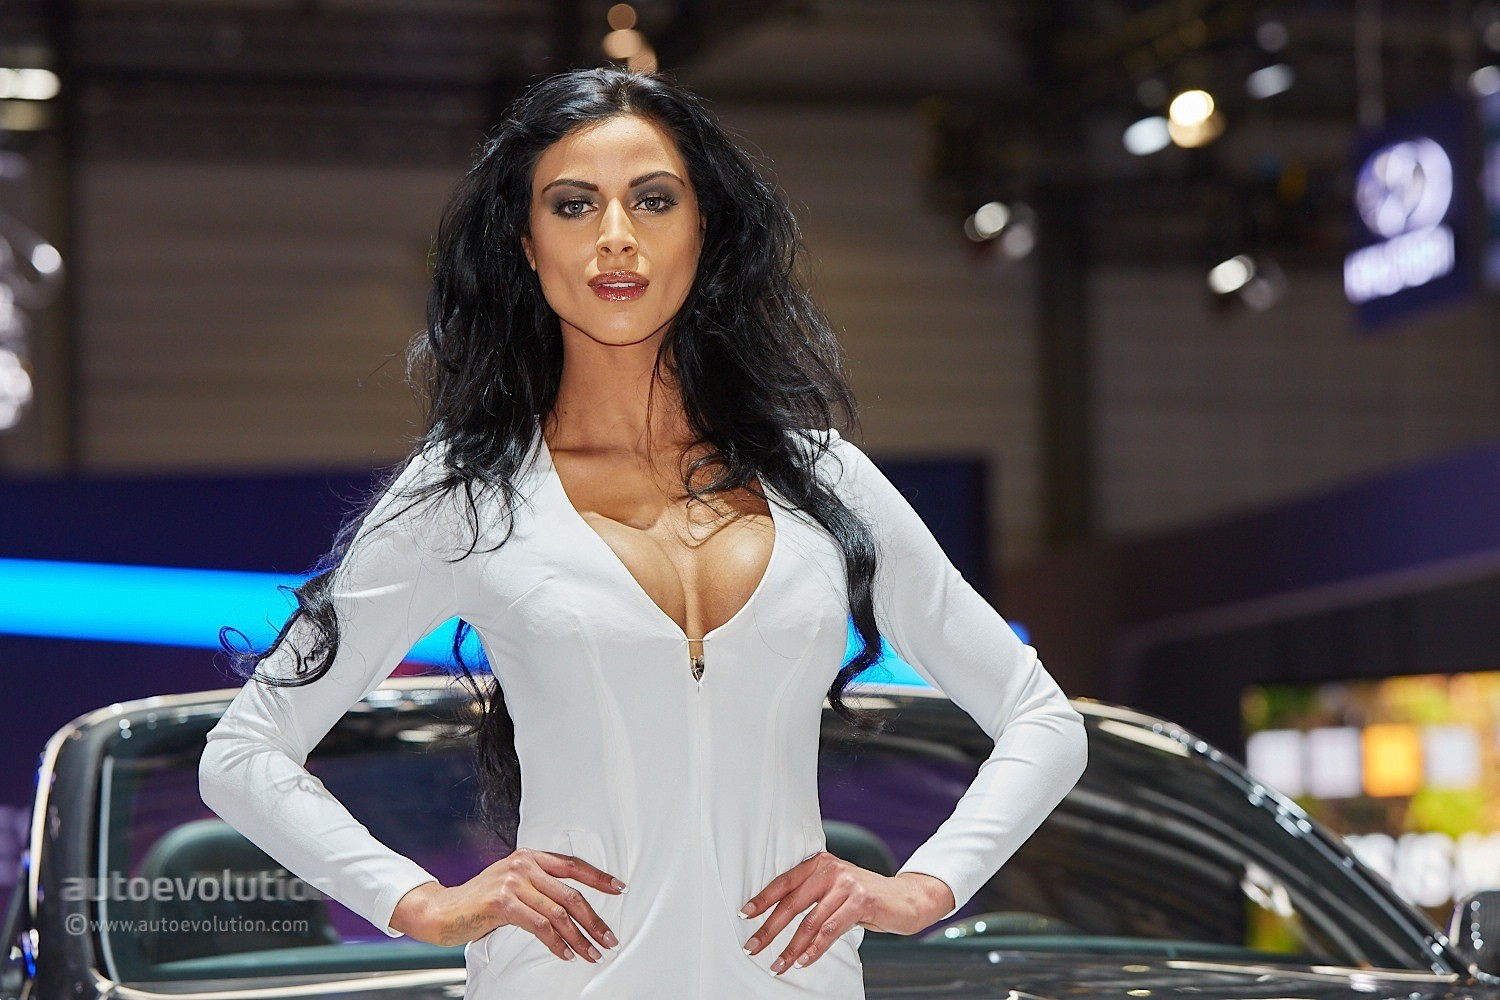 Carmakers Drop Booth Girls For The Geneva Motor Show - The count car show